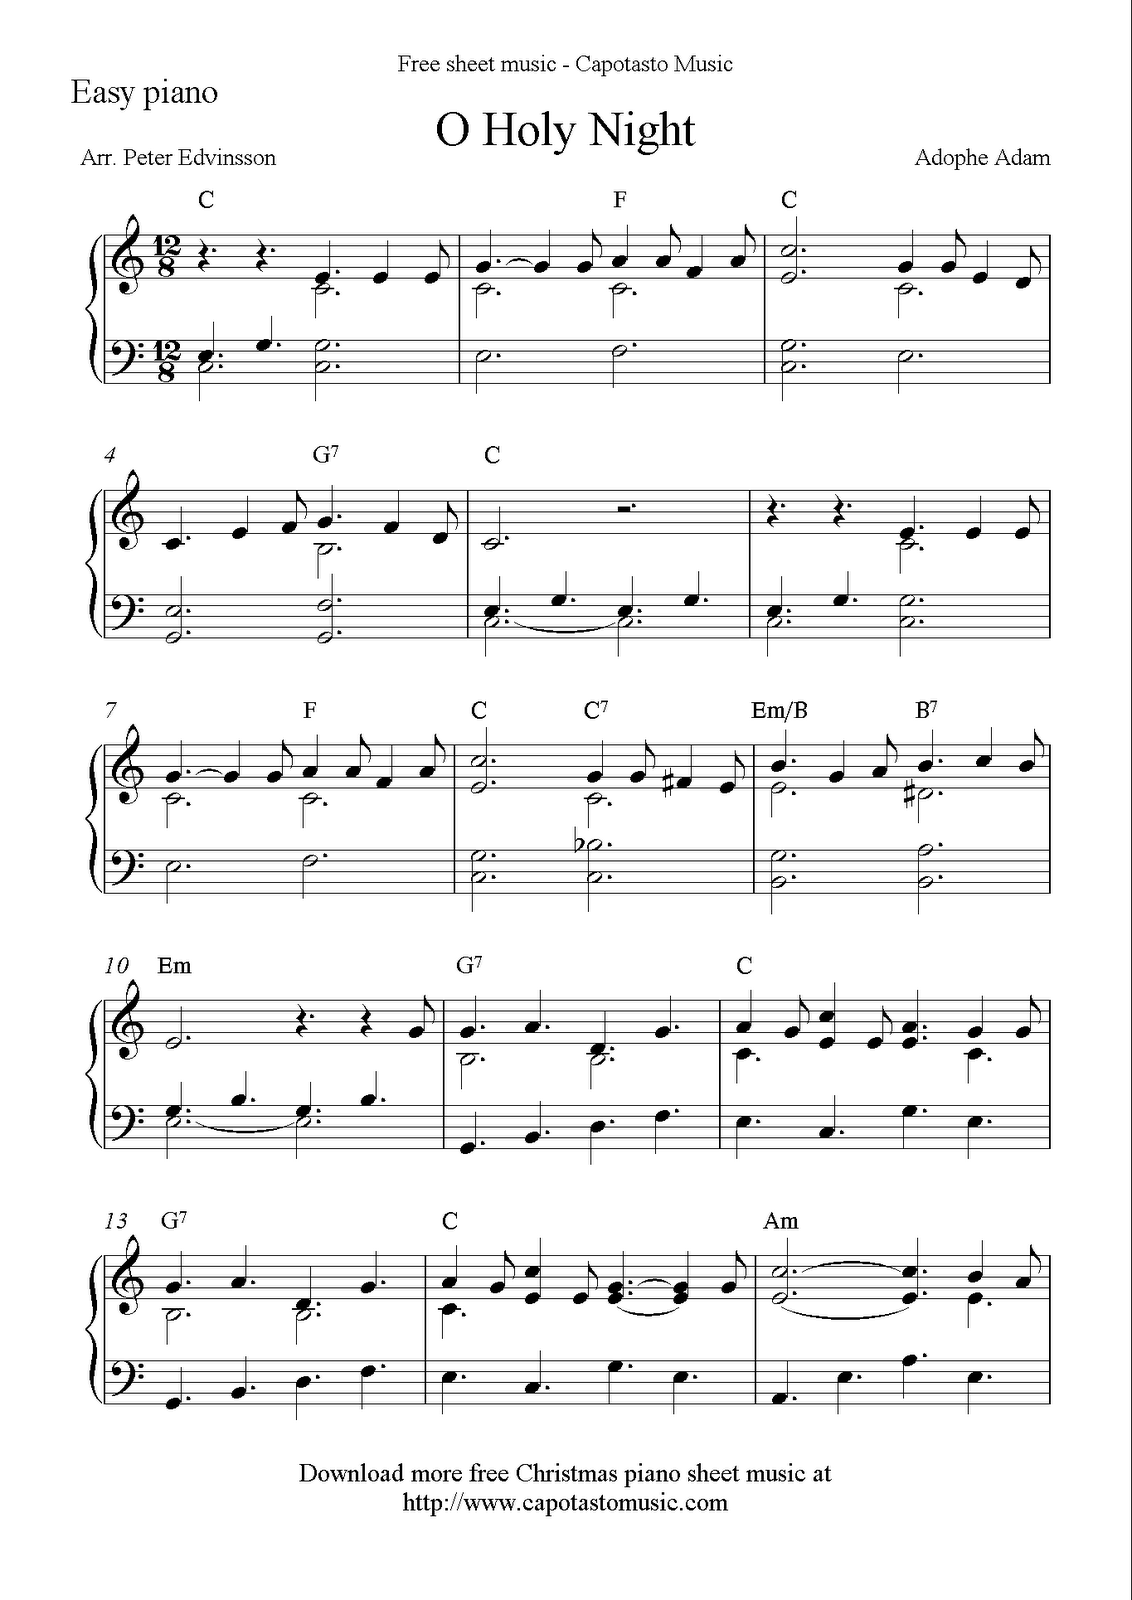 free sheet music scores free easy christmas piano sheet music o holy night - Free Christmas Piano Sheet Music